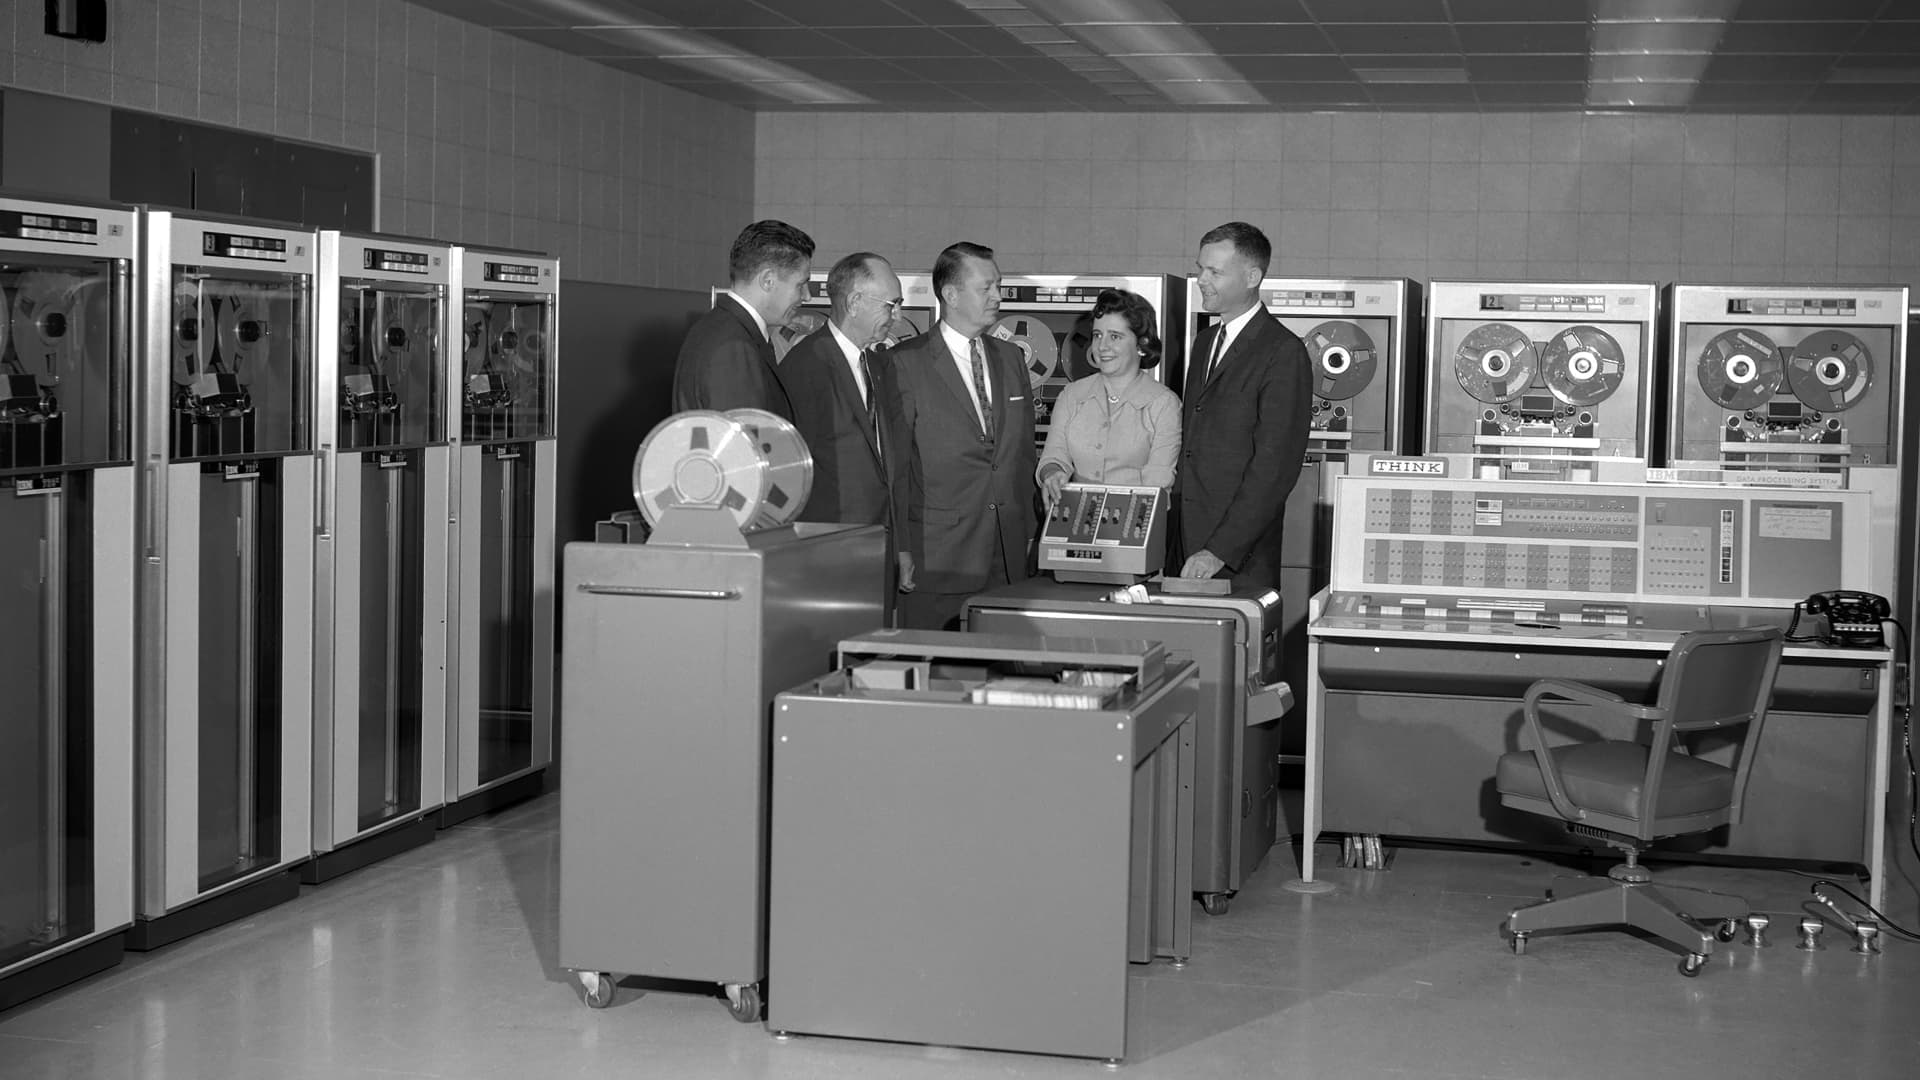 Black and white photograph of a group of IBM and government personnel in Silicon Valley, Mountain View, California, on September 20, 1961, standing next to the console of the IBM 7090 computer, which was used in early NASA space programs.